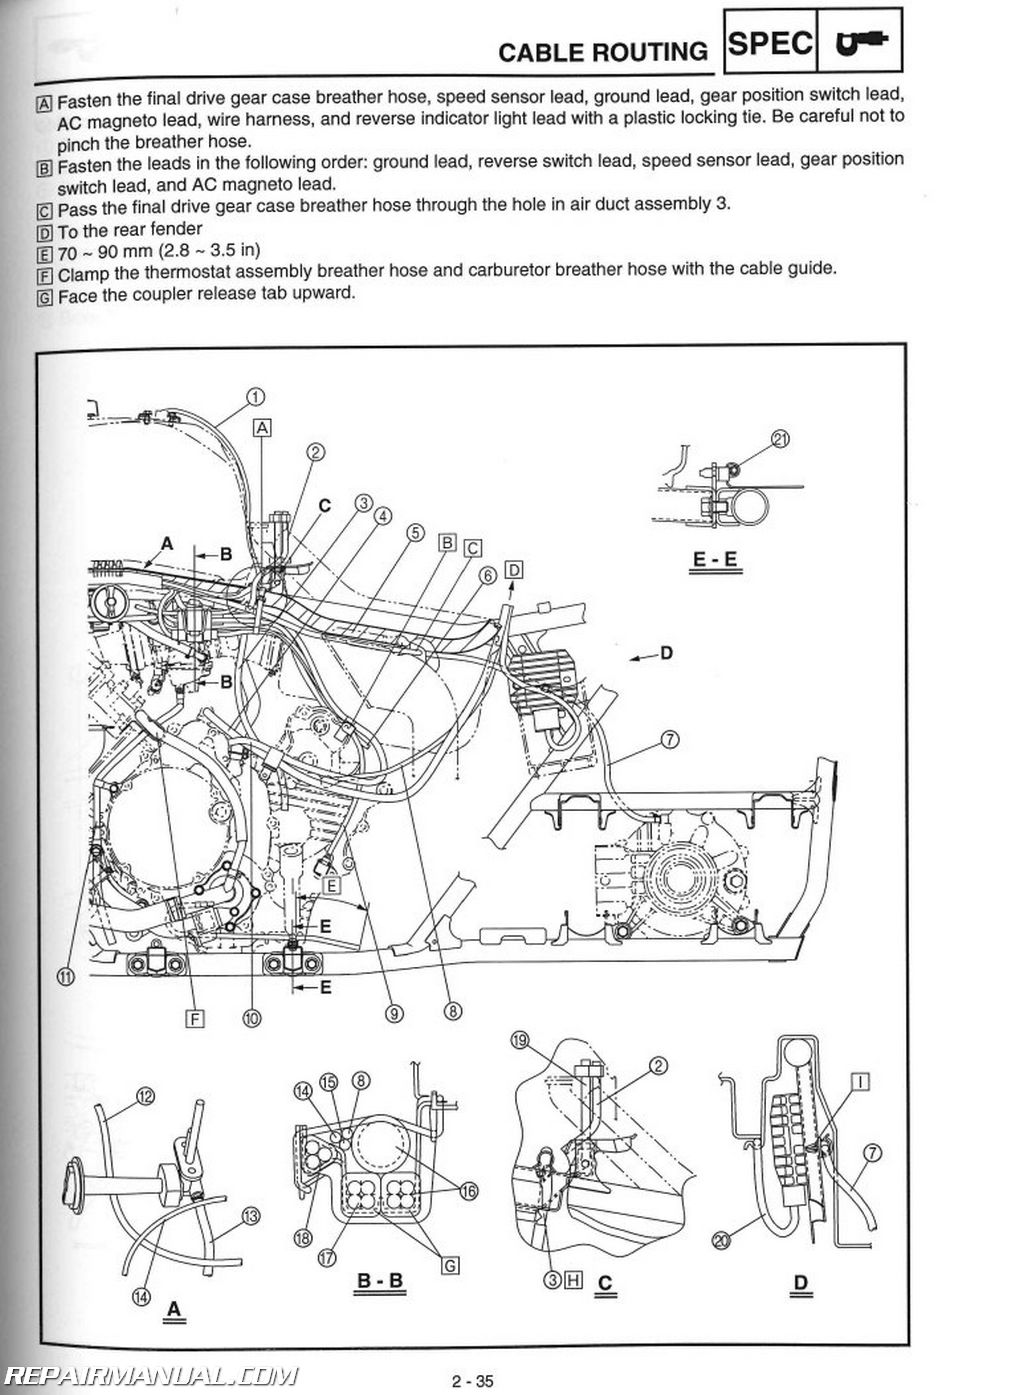 Yamaha Grizzly 660 Wiring Diagram from www.repairmanual.com